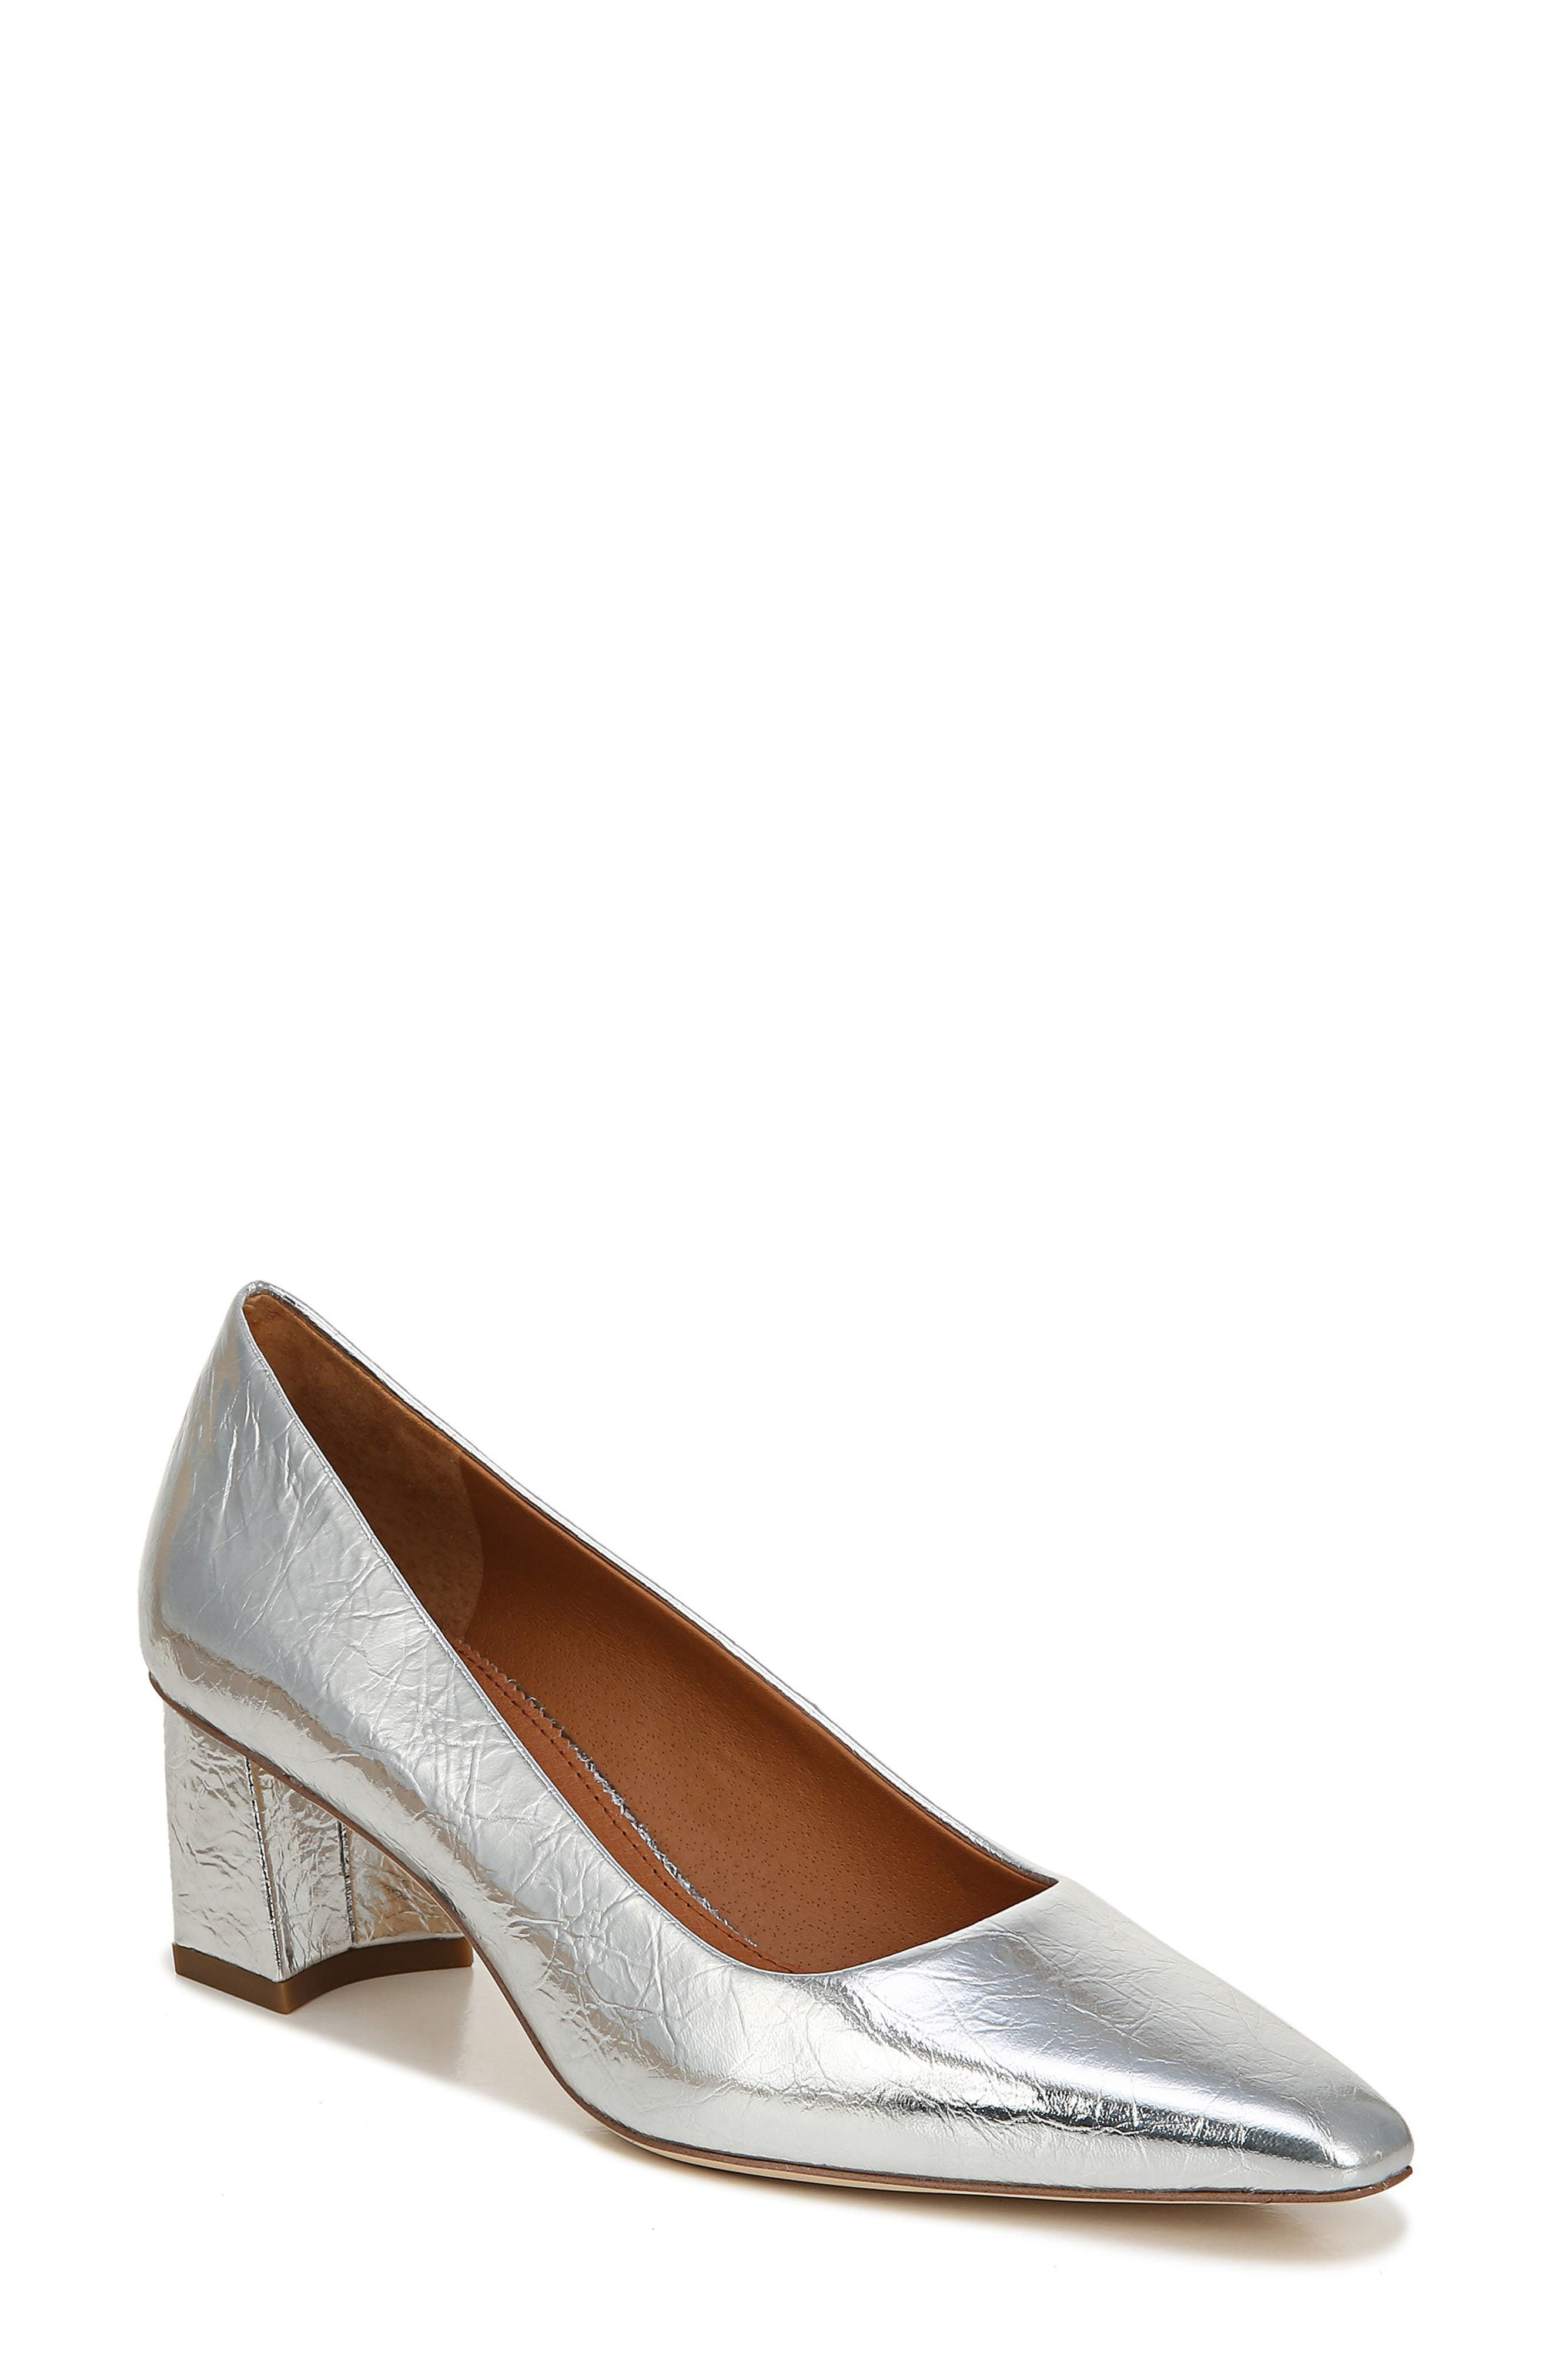 Sarto By Franco Sarto Regal Leather Pump In Silver Leather